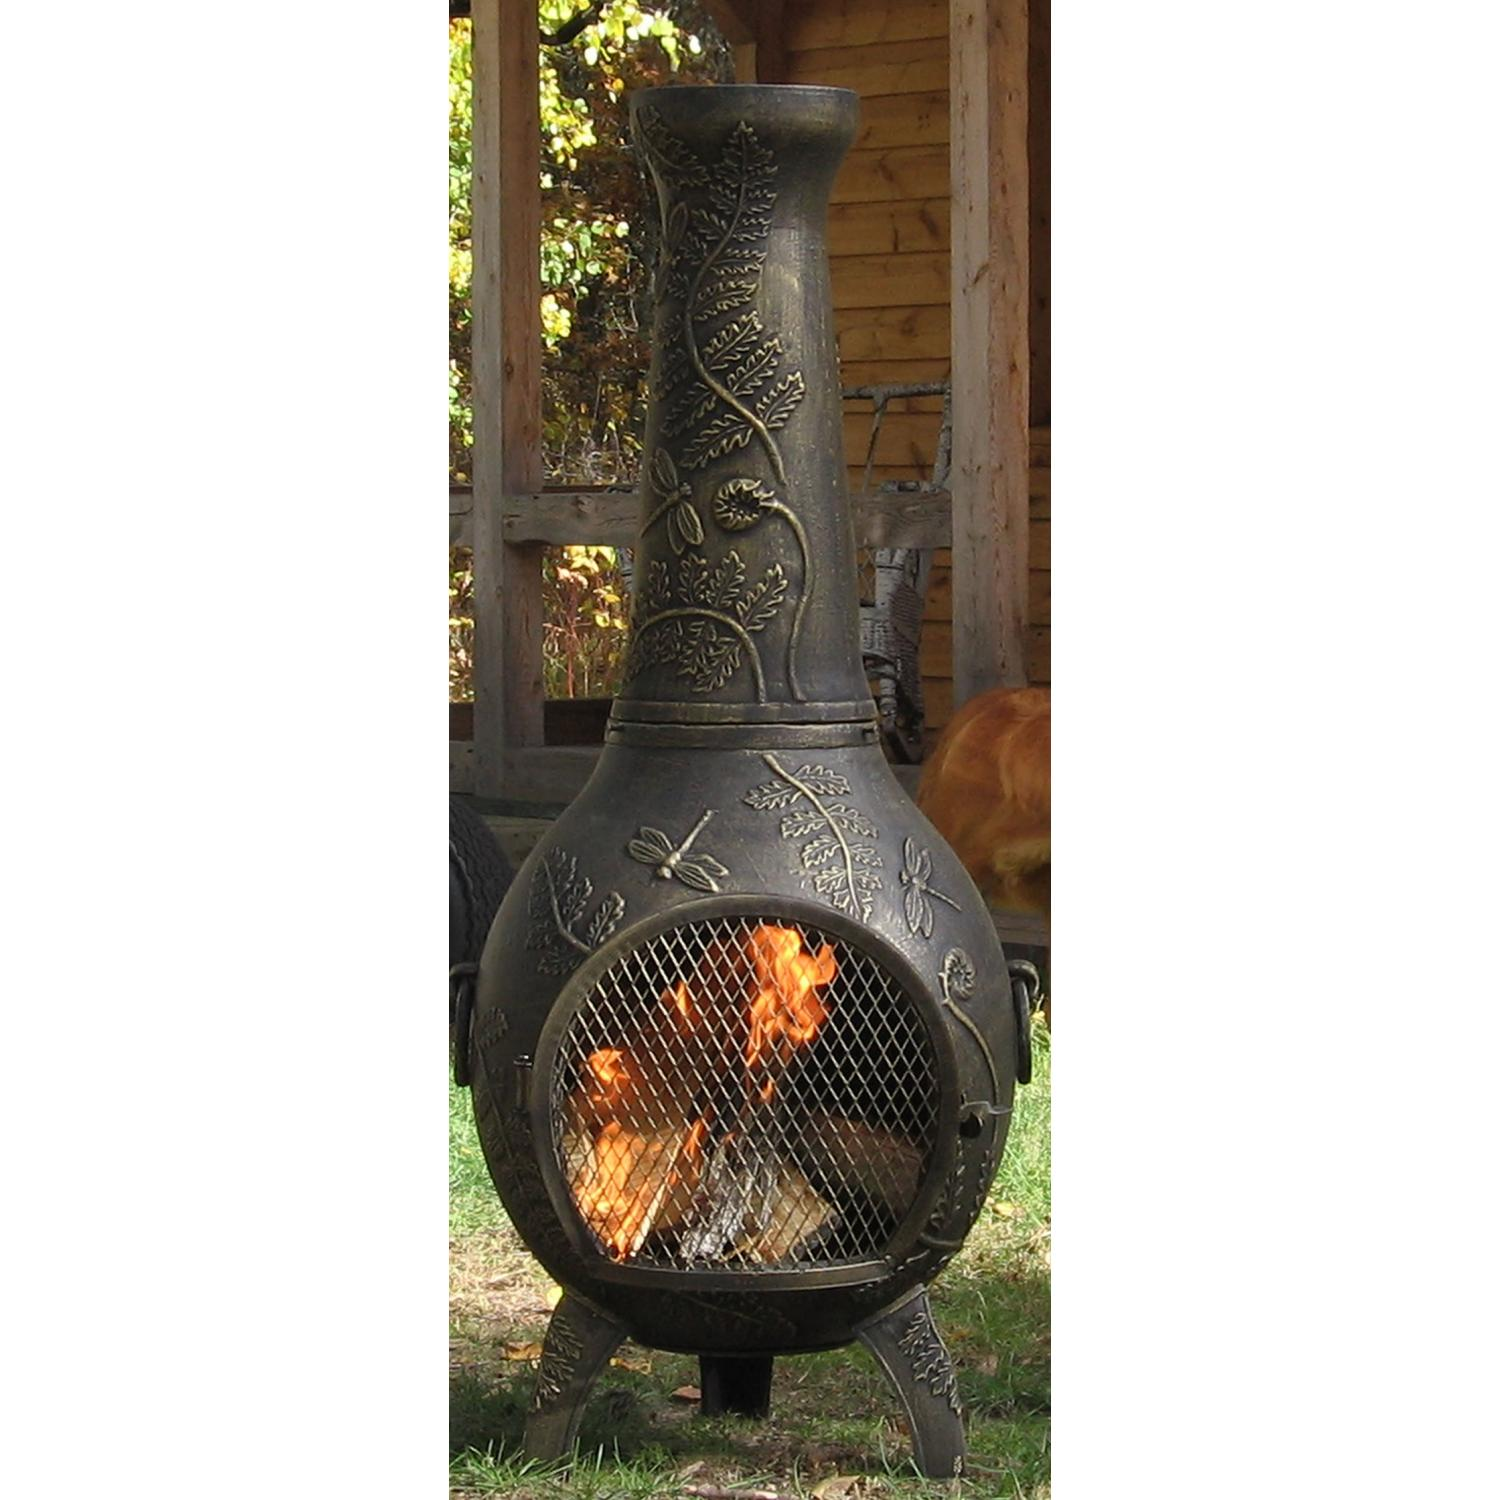 Chiminea Outdoor Fireplace ~ dact.us